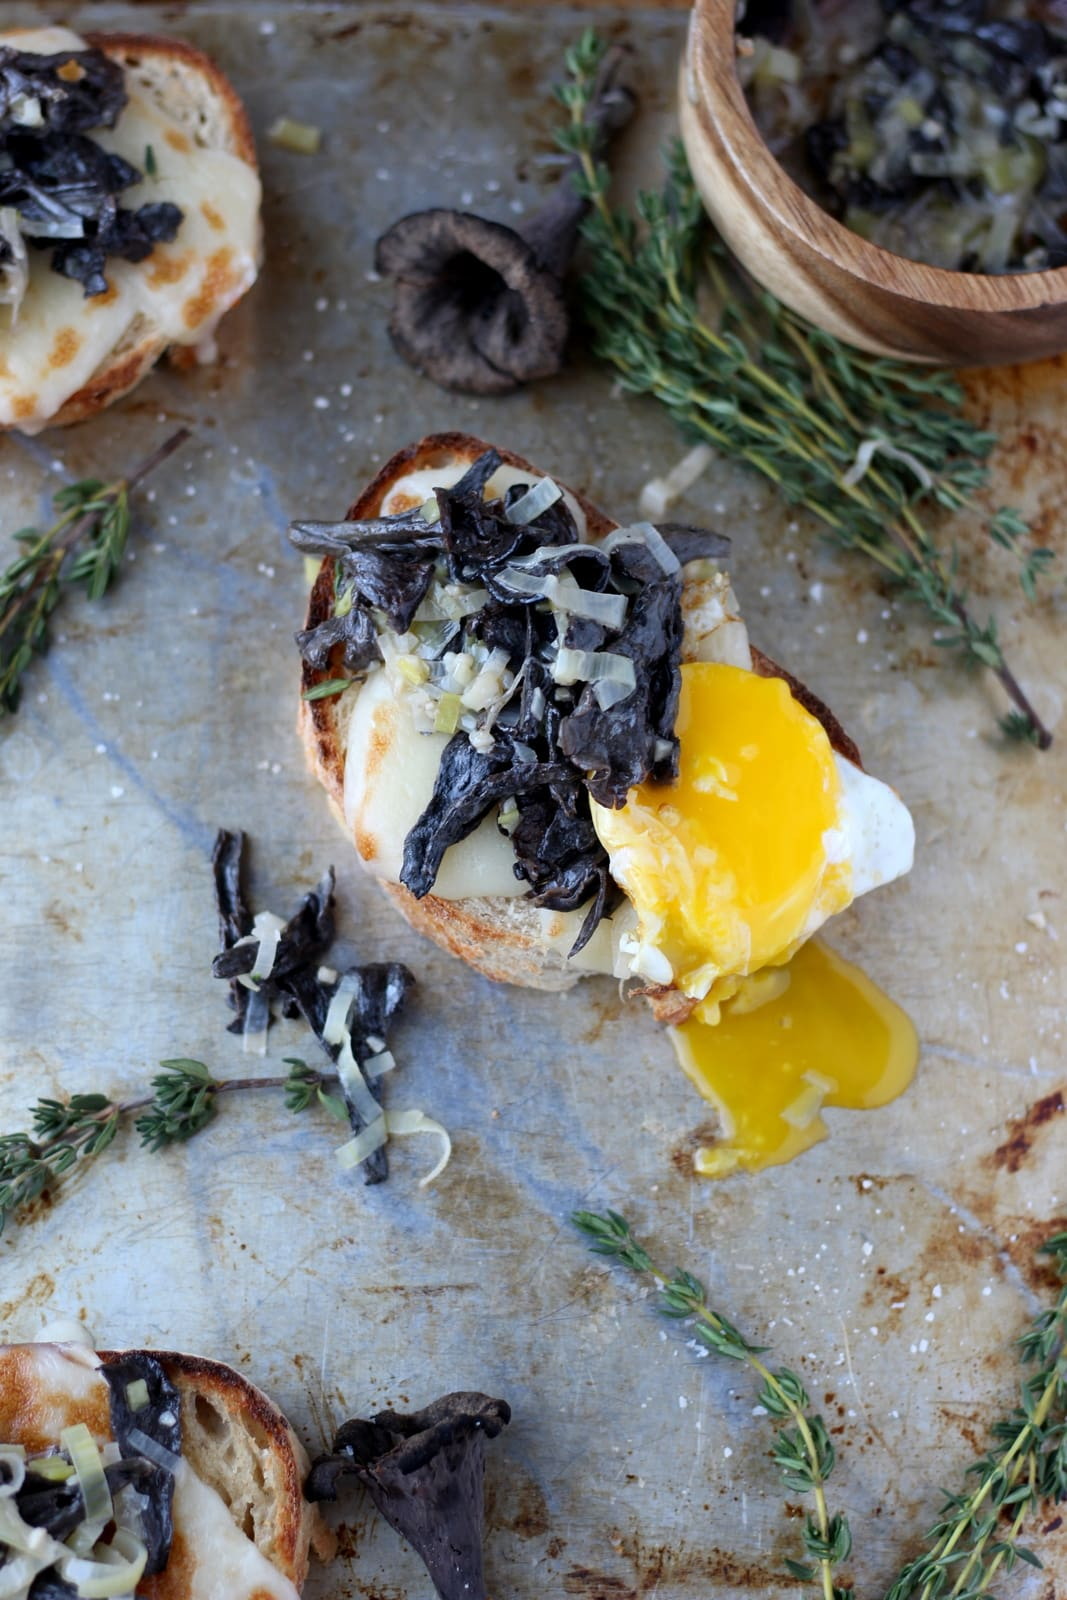 Creamy Leeks and Wild Black Trumpet Mushrooms on Toast with Egg Over-Easy. A great appetizer, small plate or breakfast recipe. Clean eating at its best. thewoodenskillet.com #foodphotography #foodstyling